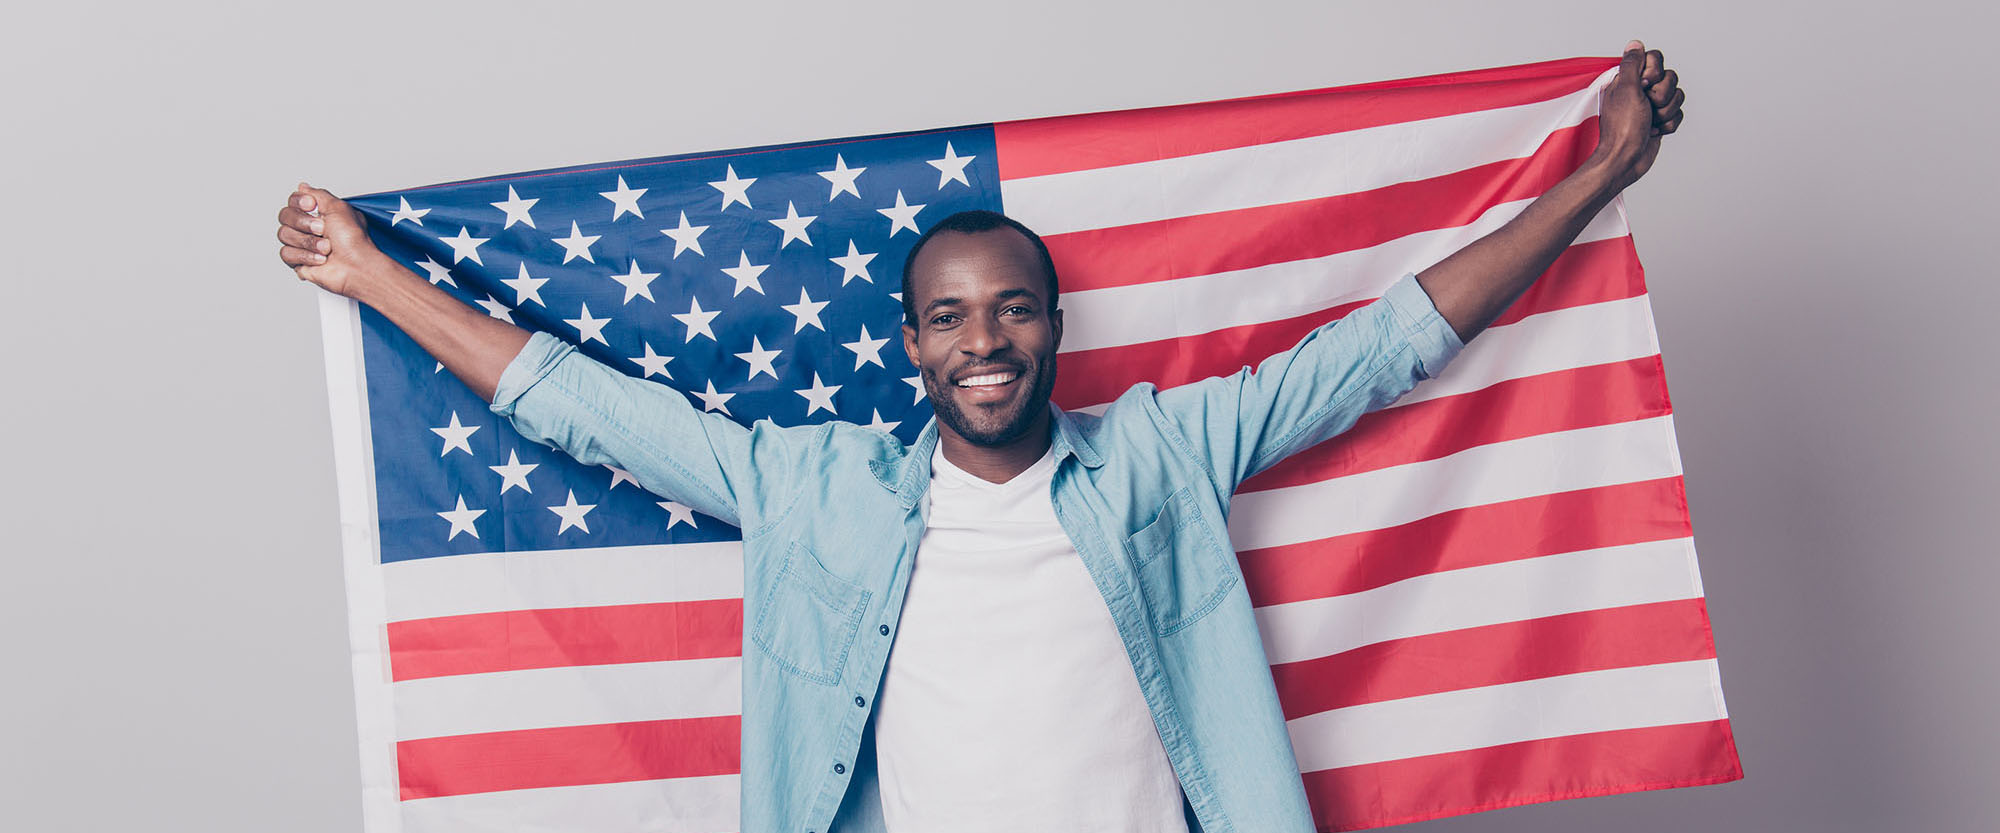 Find Out If You're Eligible to Apply for US Citizenship